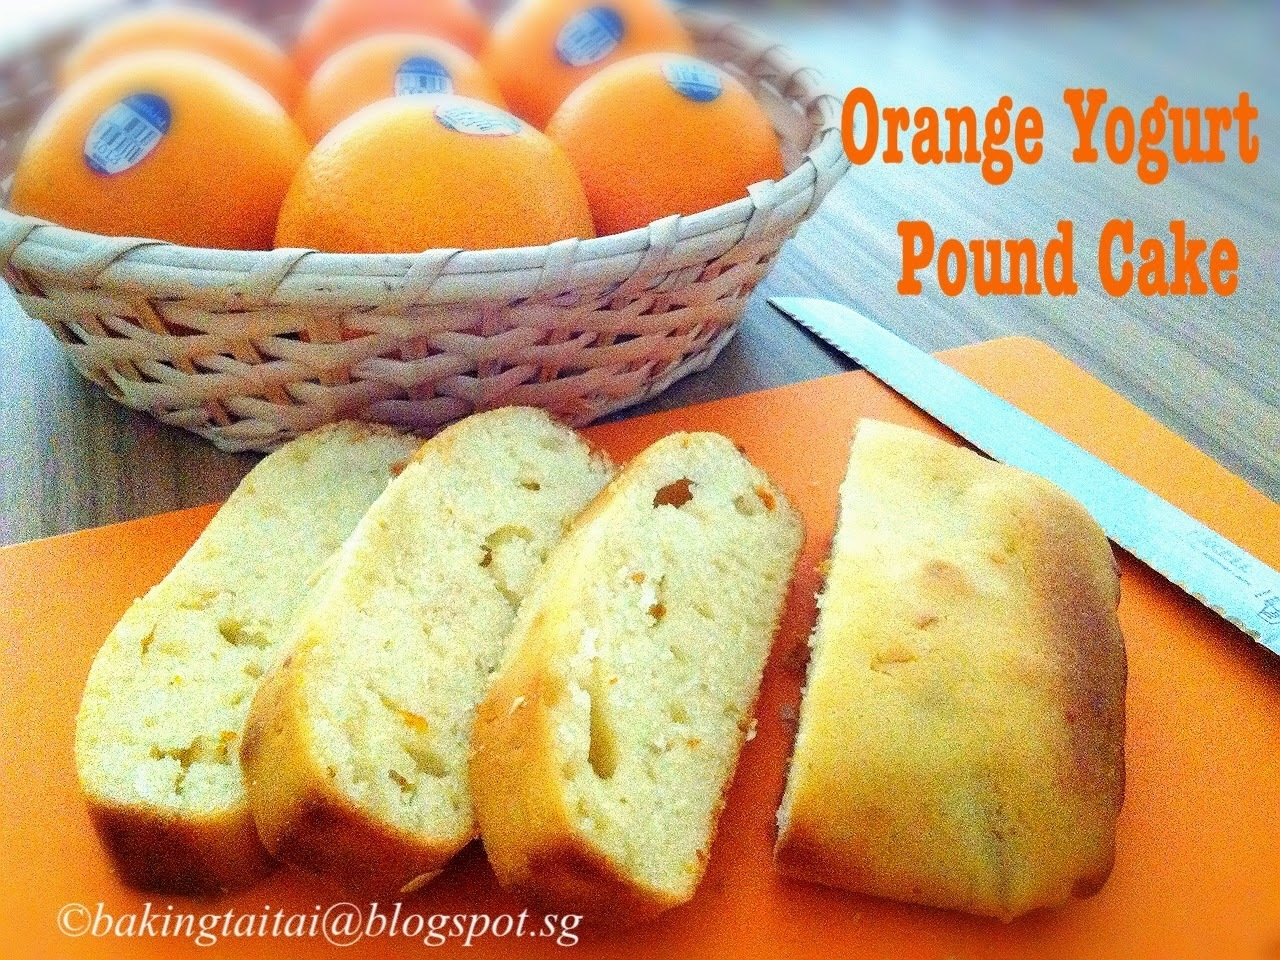 Orange Yogurt Pound Cake Tutorial Recipe 柳橙酸奶磅蛋糕 (中英食谱教程)